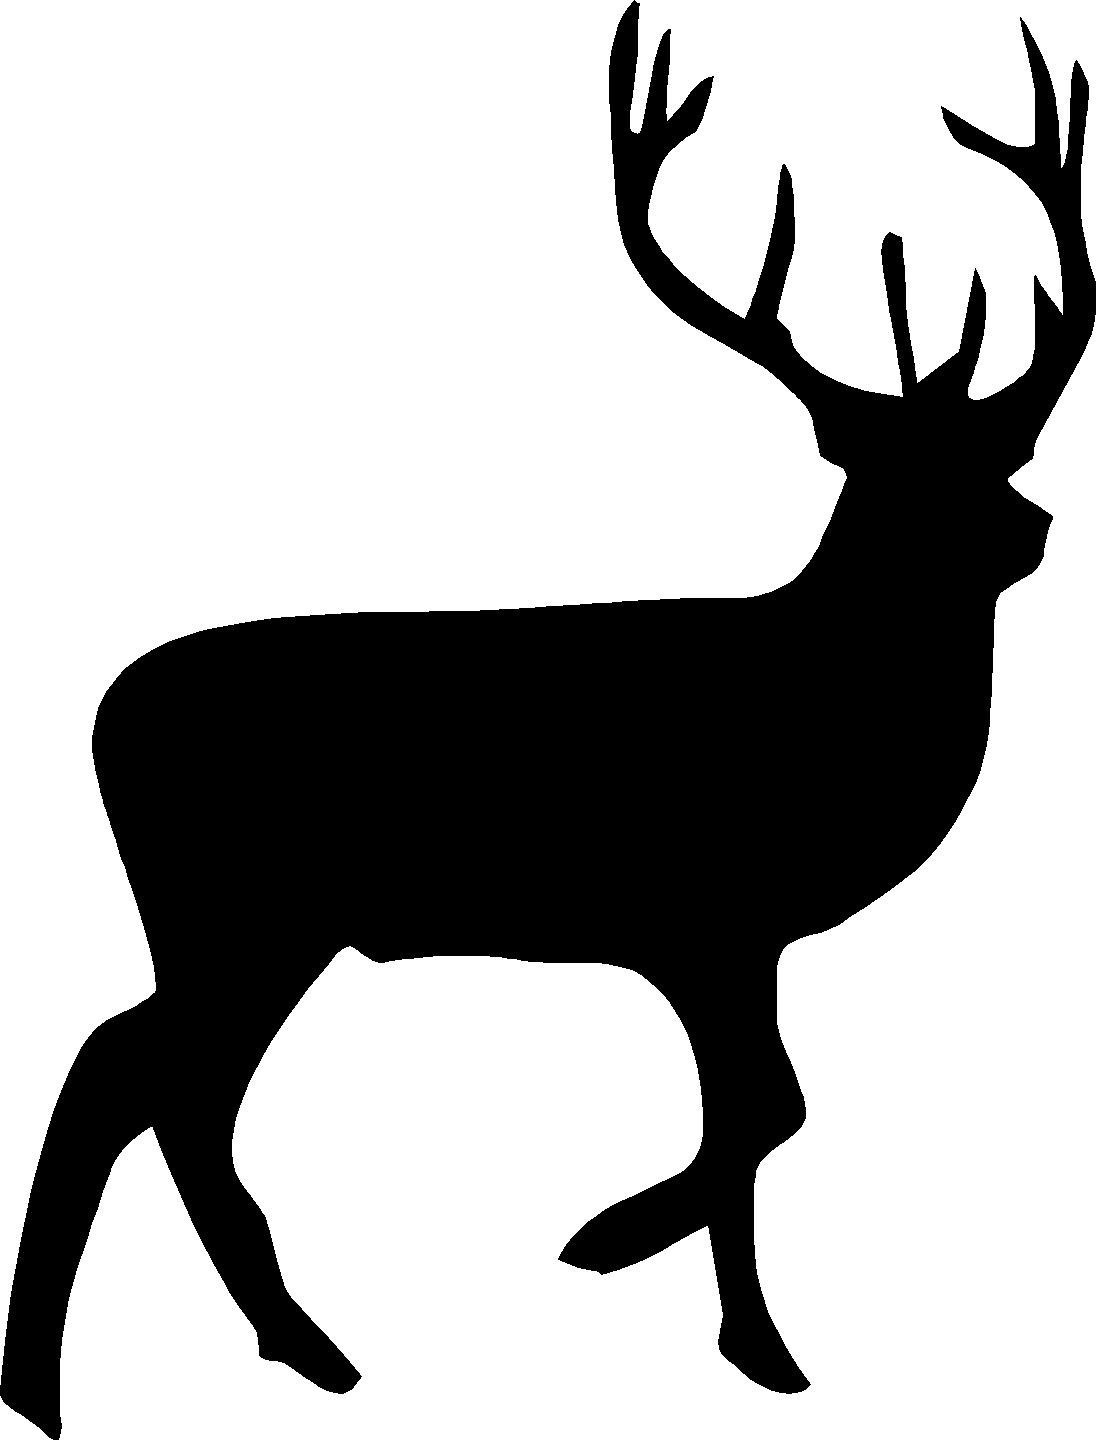 stag silhouette deer silhouette png transparent deer silhouette png image silhouette stag